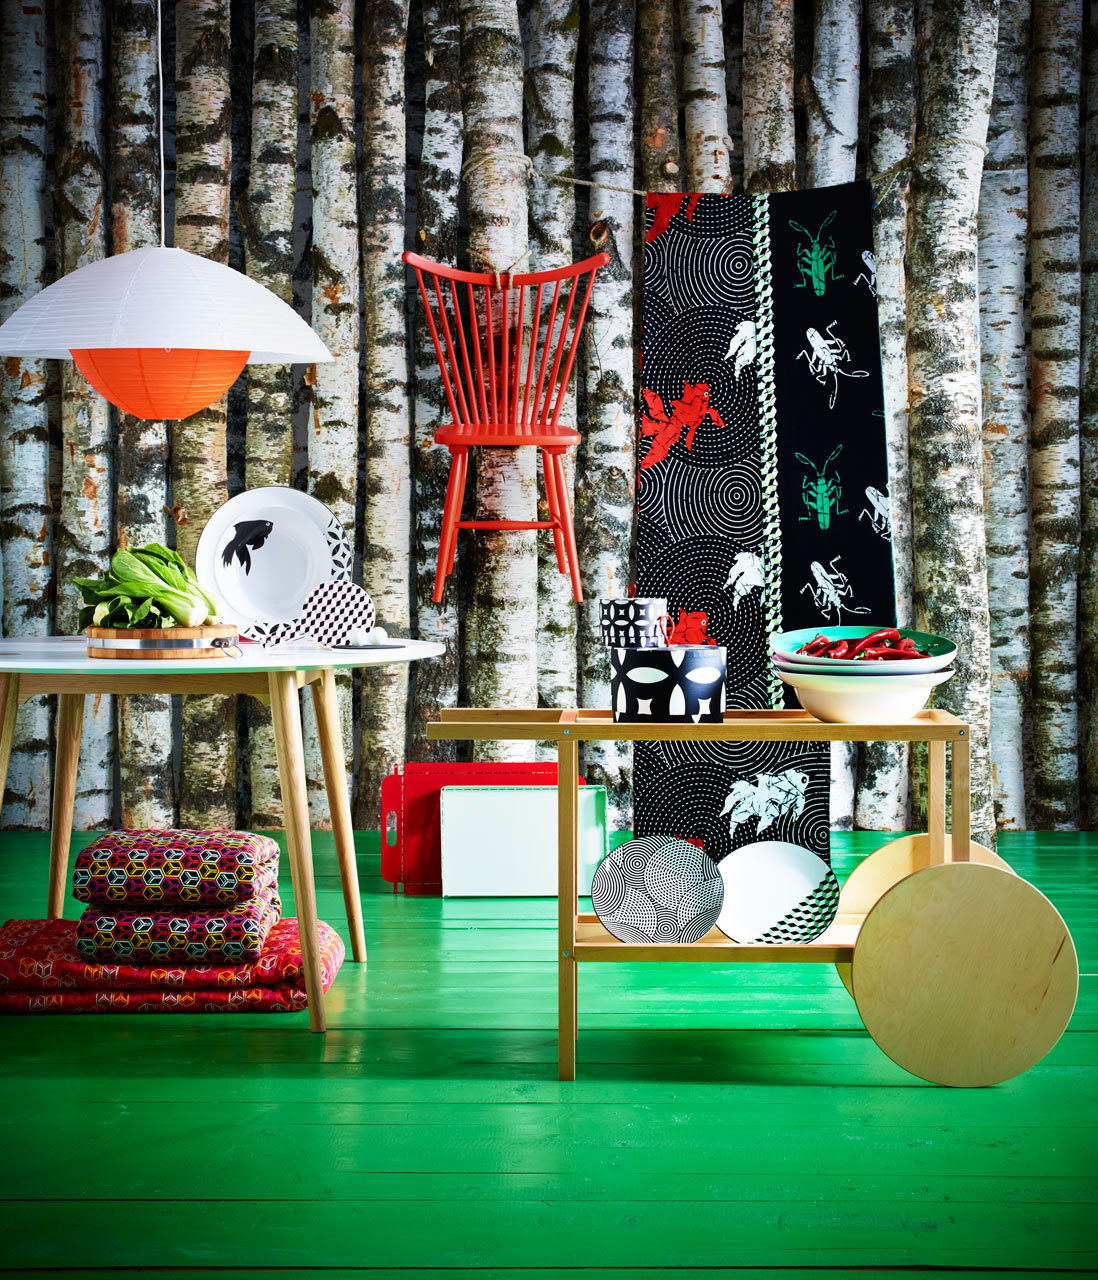 IKEA's New Limited Edition TRENDIG 2013 Collection